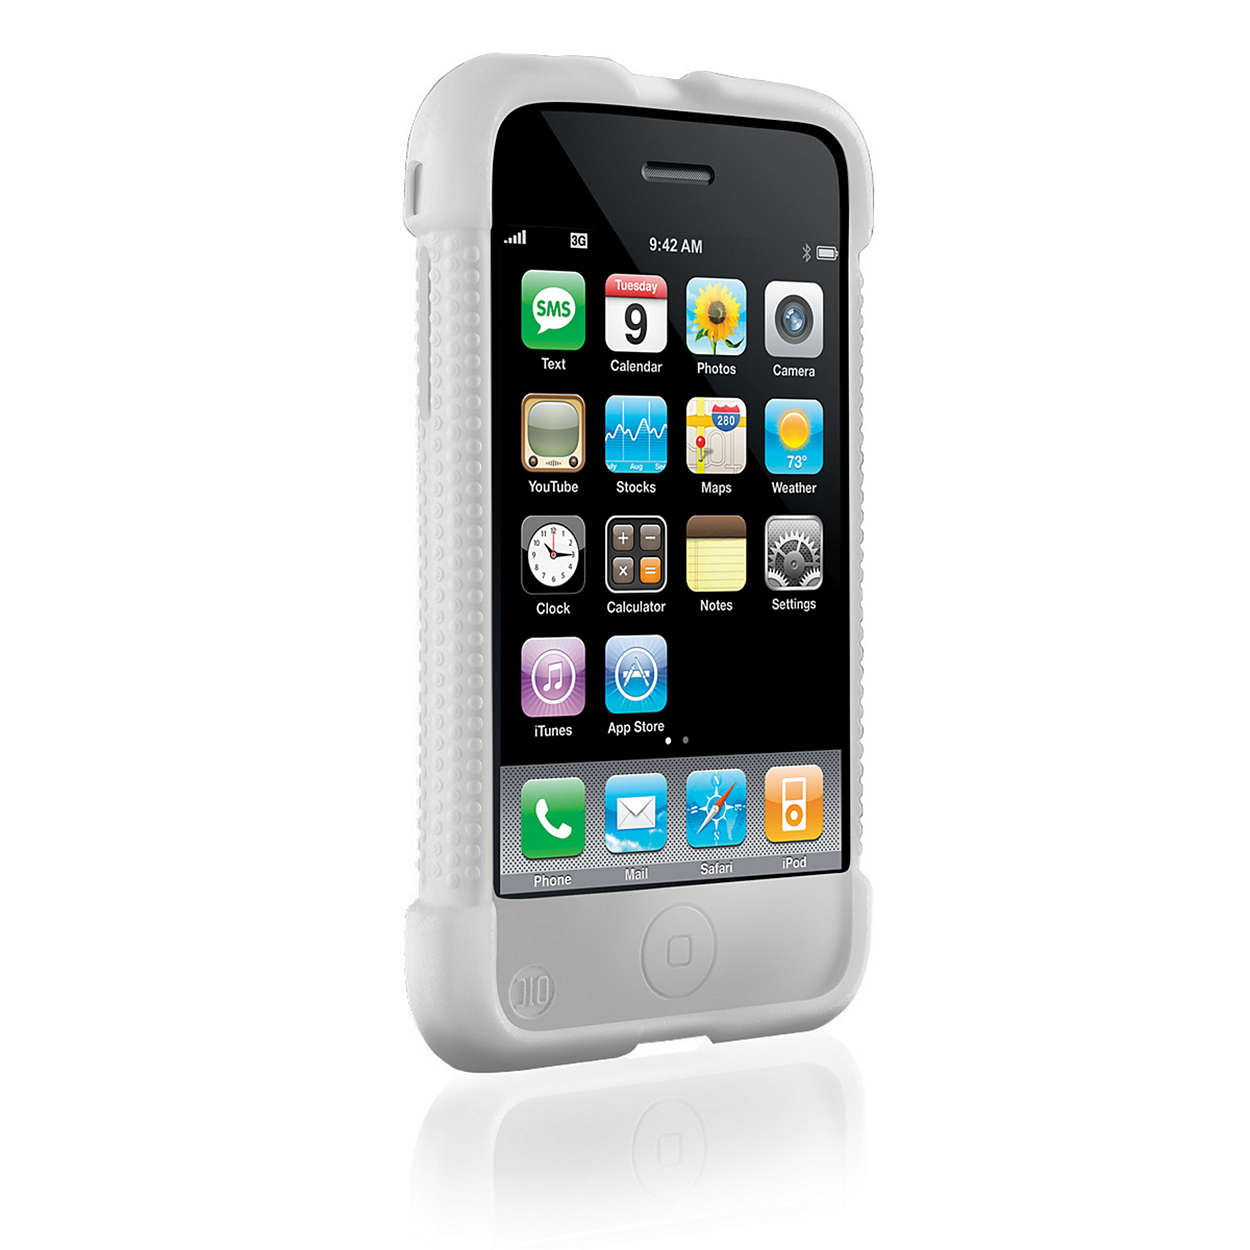 philips clear silicone case for iphone 3g 3gs new ebay. Black Bedroom Furniture Sets. Home Design Ideas